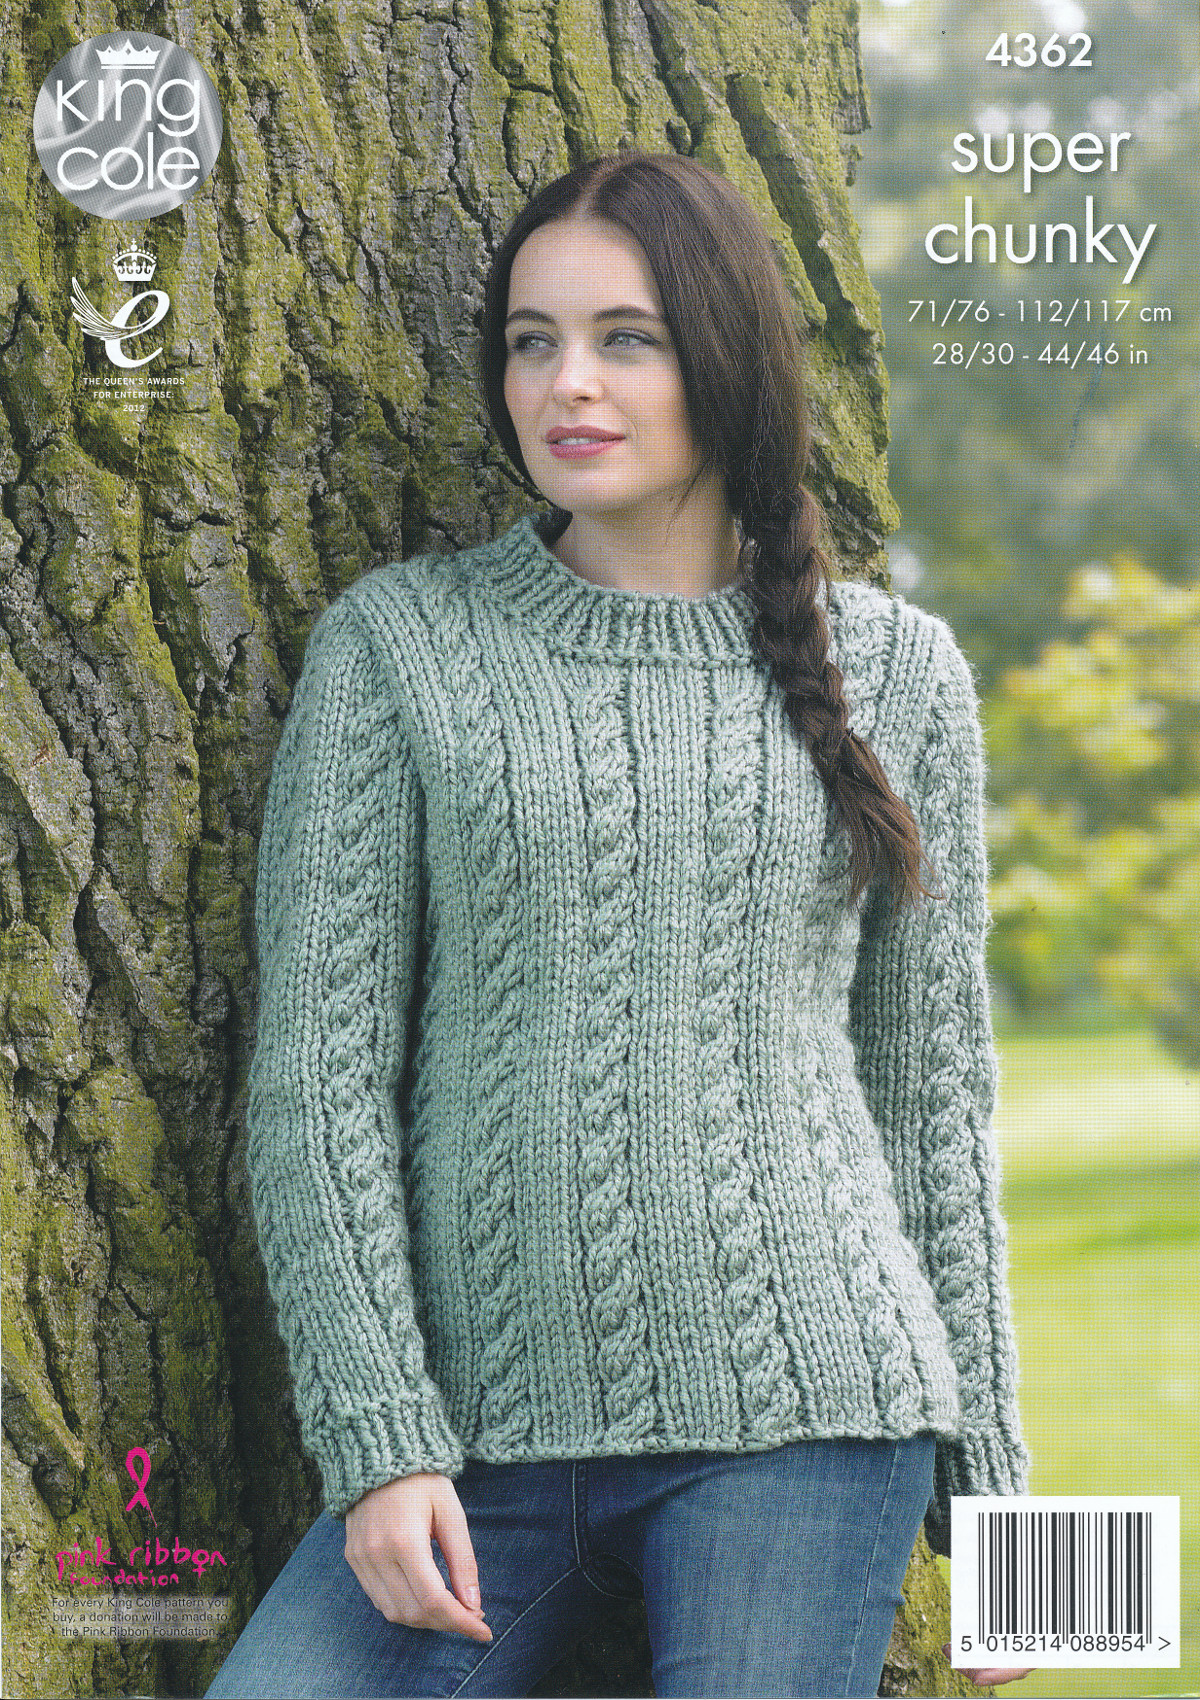 Knitting Pattern Ladies Cable Jumper : Ladies Super Chunky Knitting Pattern King Cole Cable Knit ...